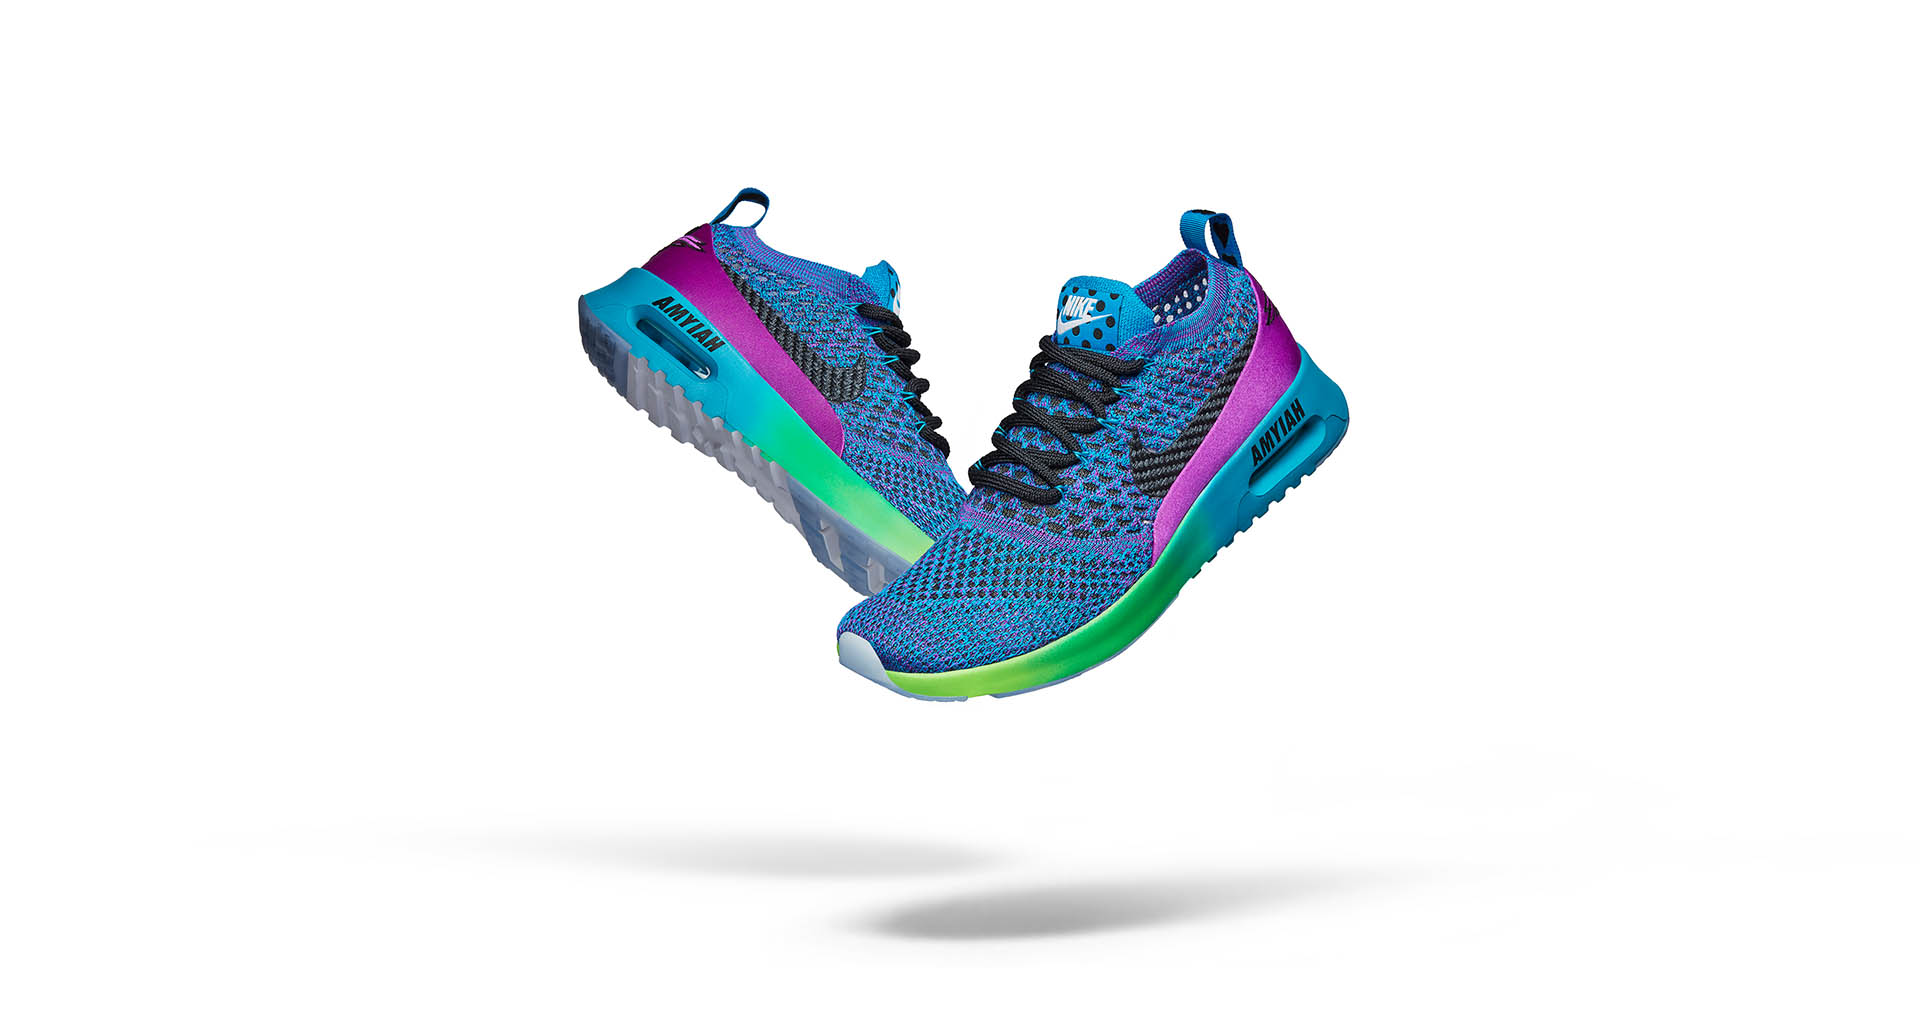 b9519cdf17 2017 Doernbecher Freestyle collection. Amyiah Robinson's colorful ombre Women's  Air Max Thea Ultra Flyknit ...